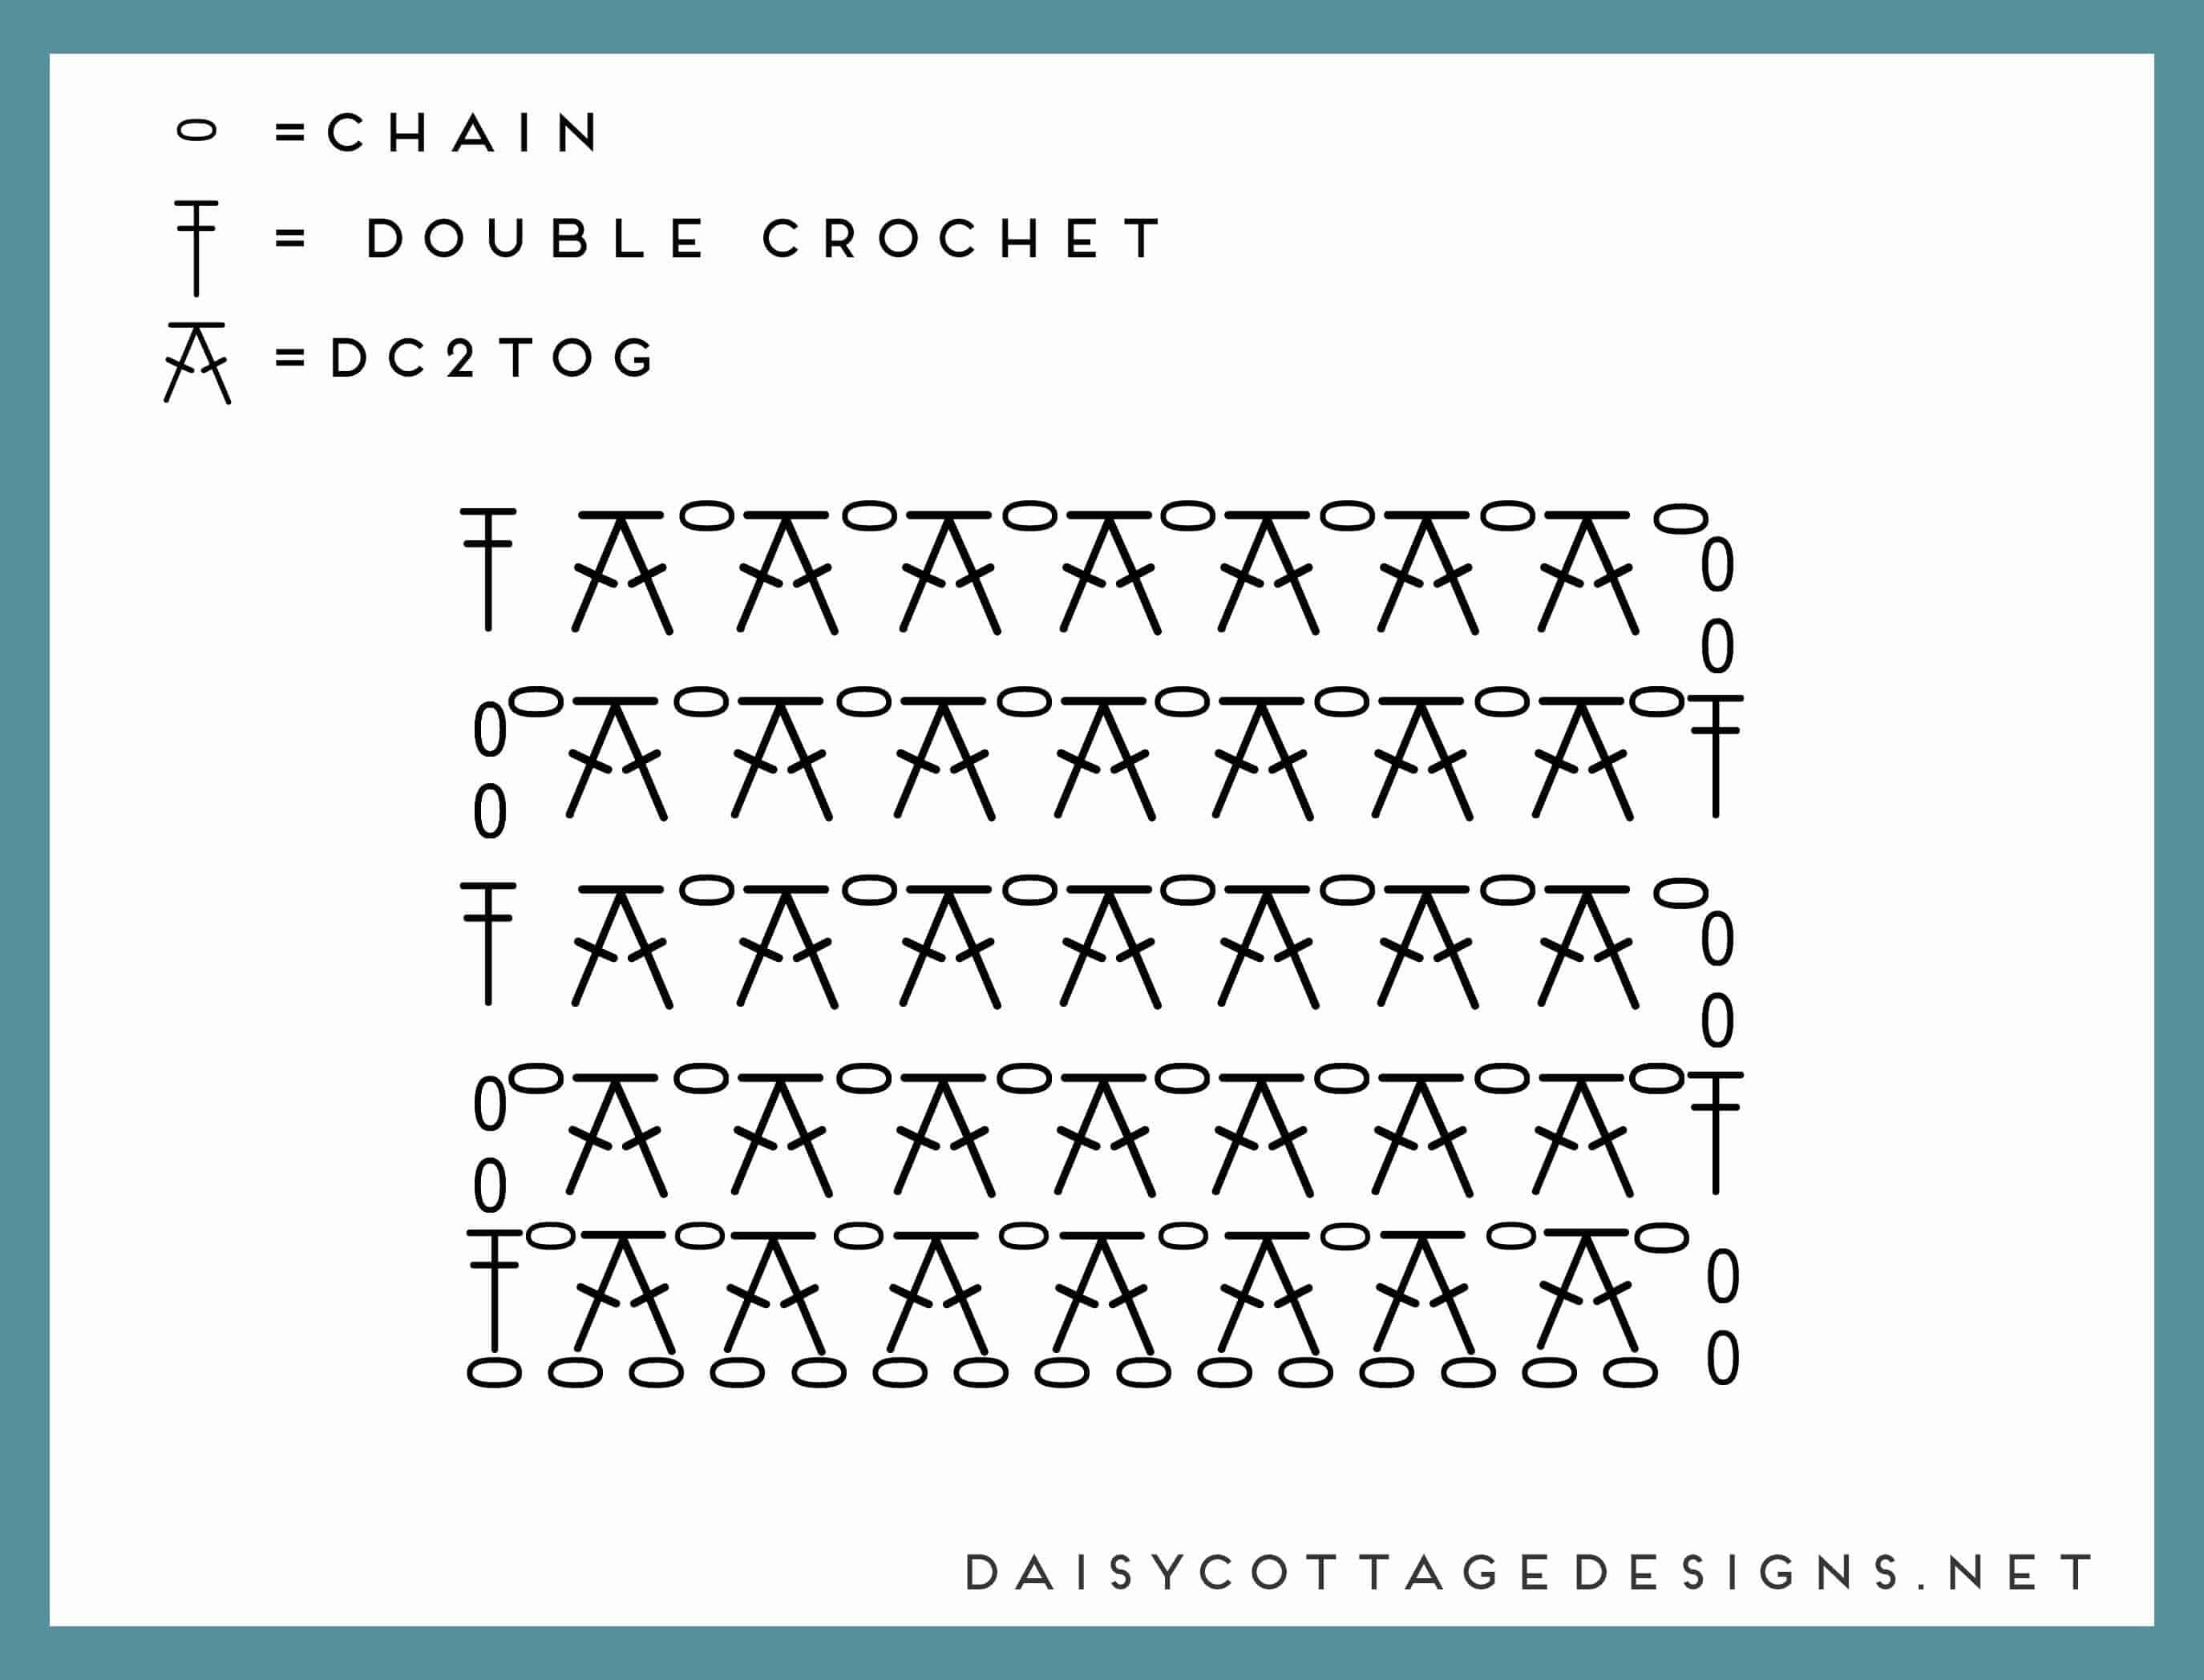 Color block blanket crochet pattern daisy cottage designs use this free crochet blanket pattern from daisy cottage designs to create a color block blanket pooptronica